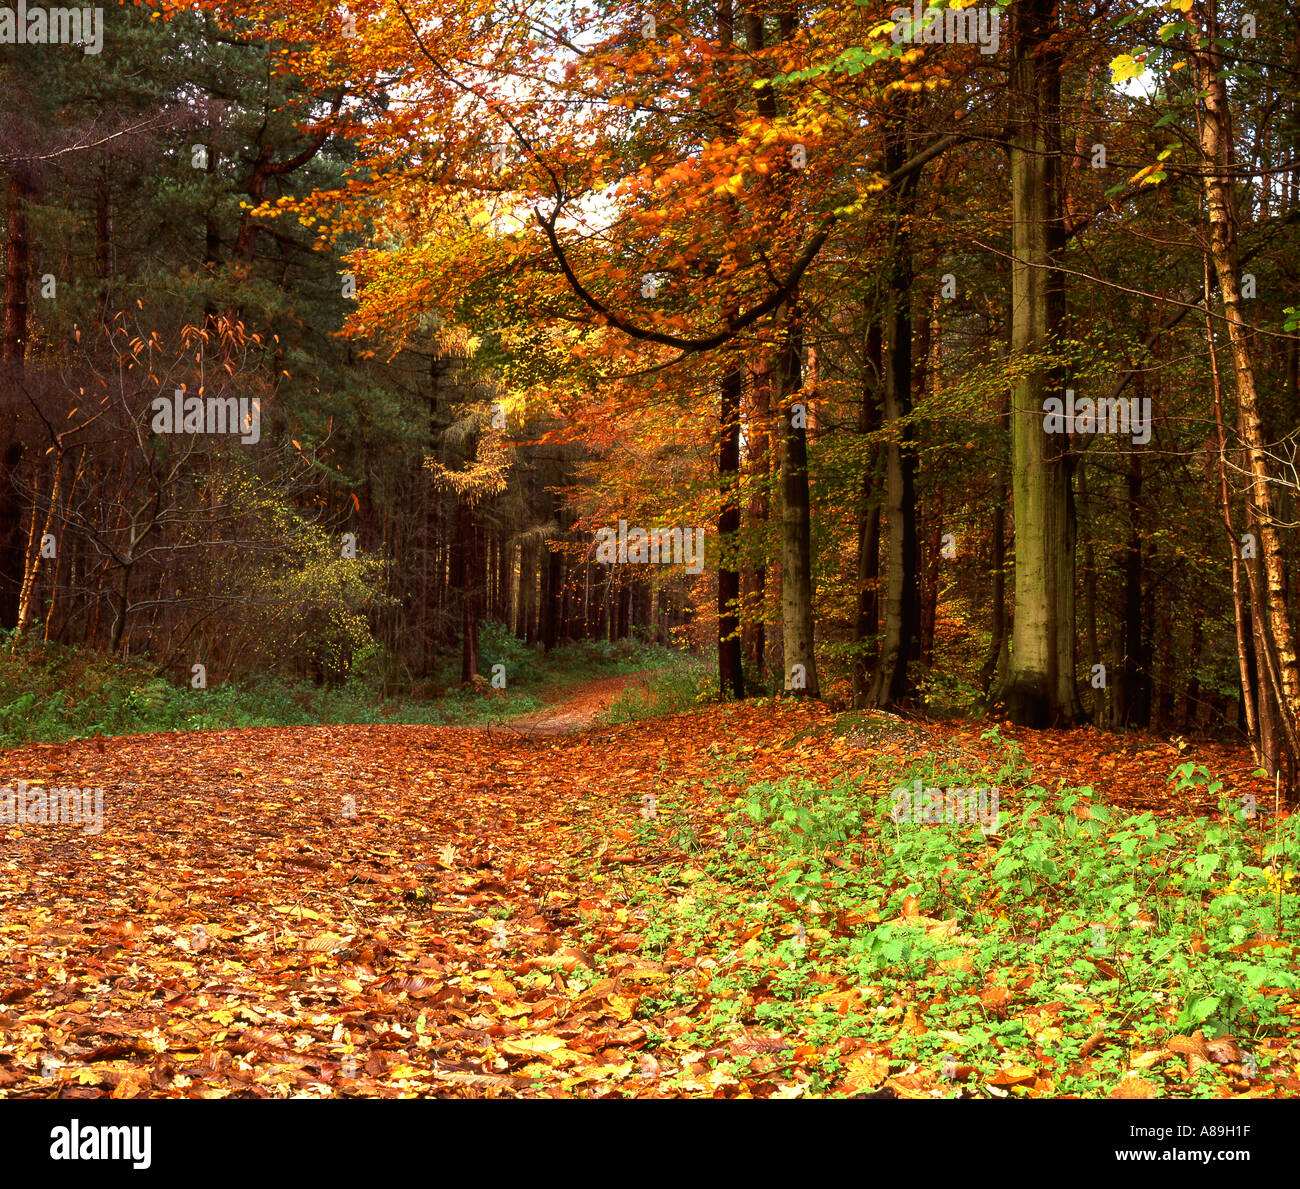 Autumn in Delamere Forest, Cheshire, England, UK - Stock Image